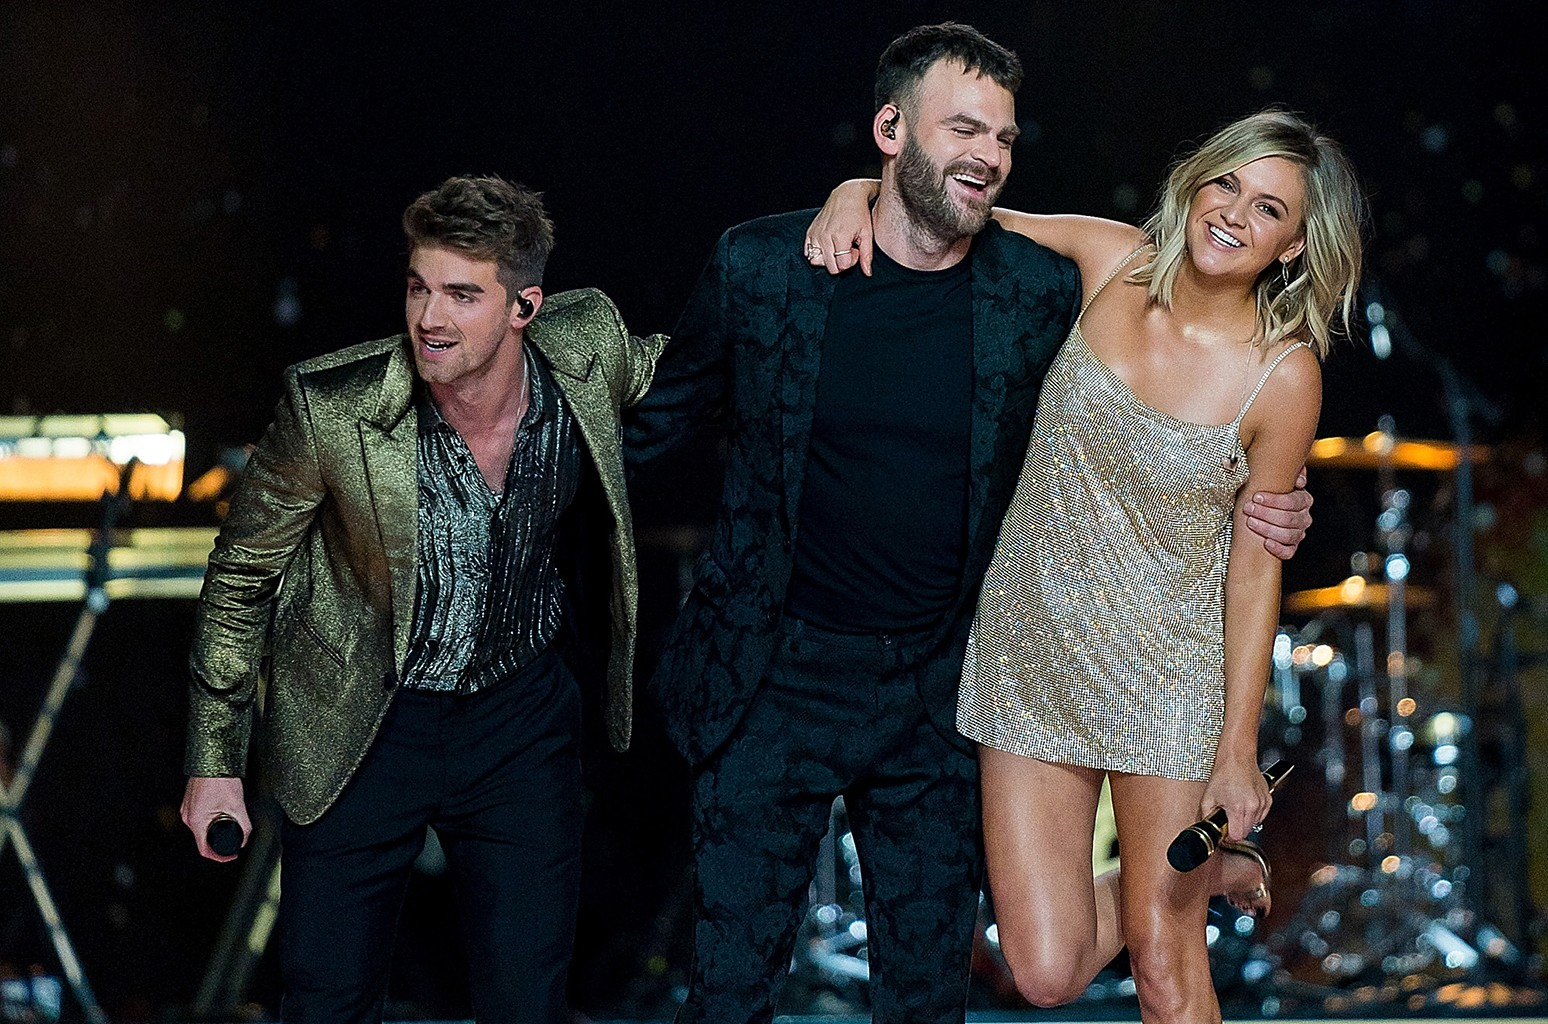 Andrew Taggart, Alex Pall and Kelsea Ballerini